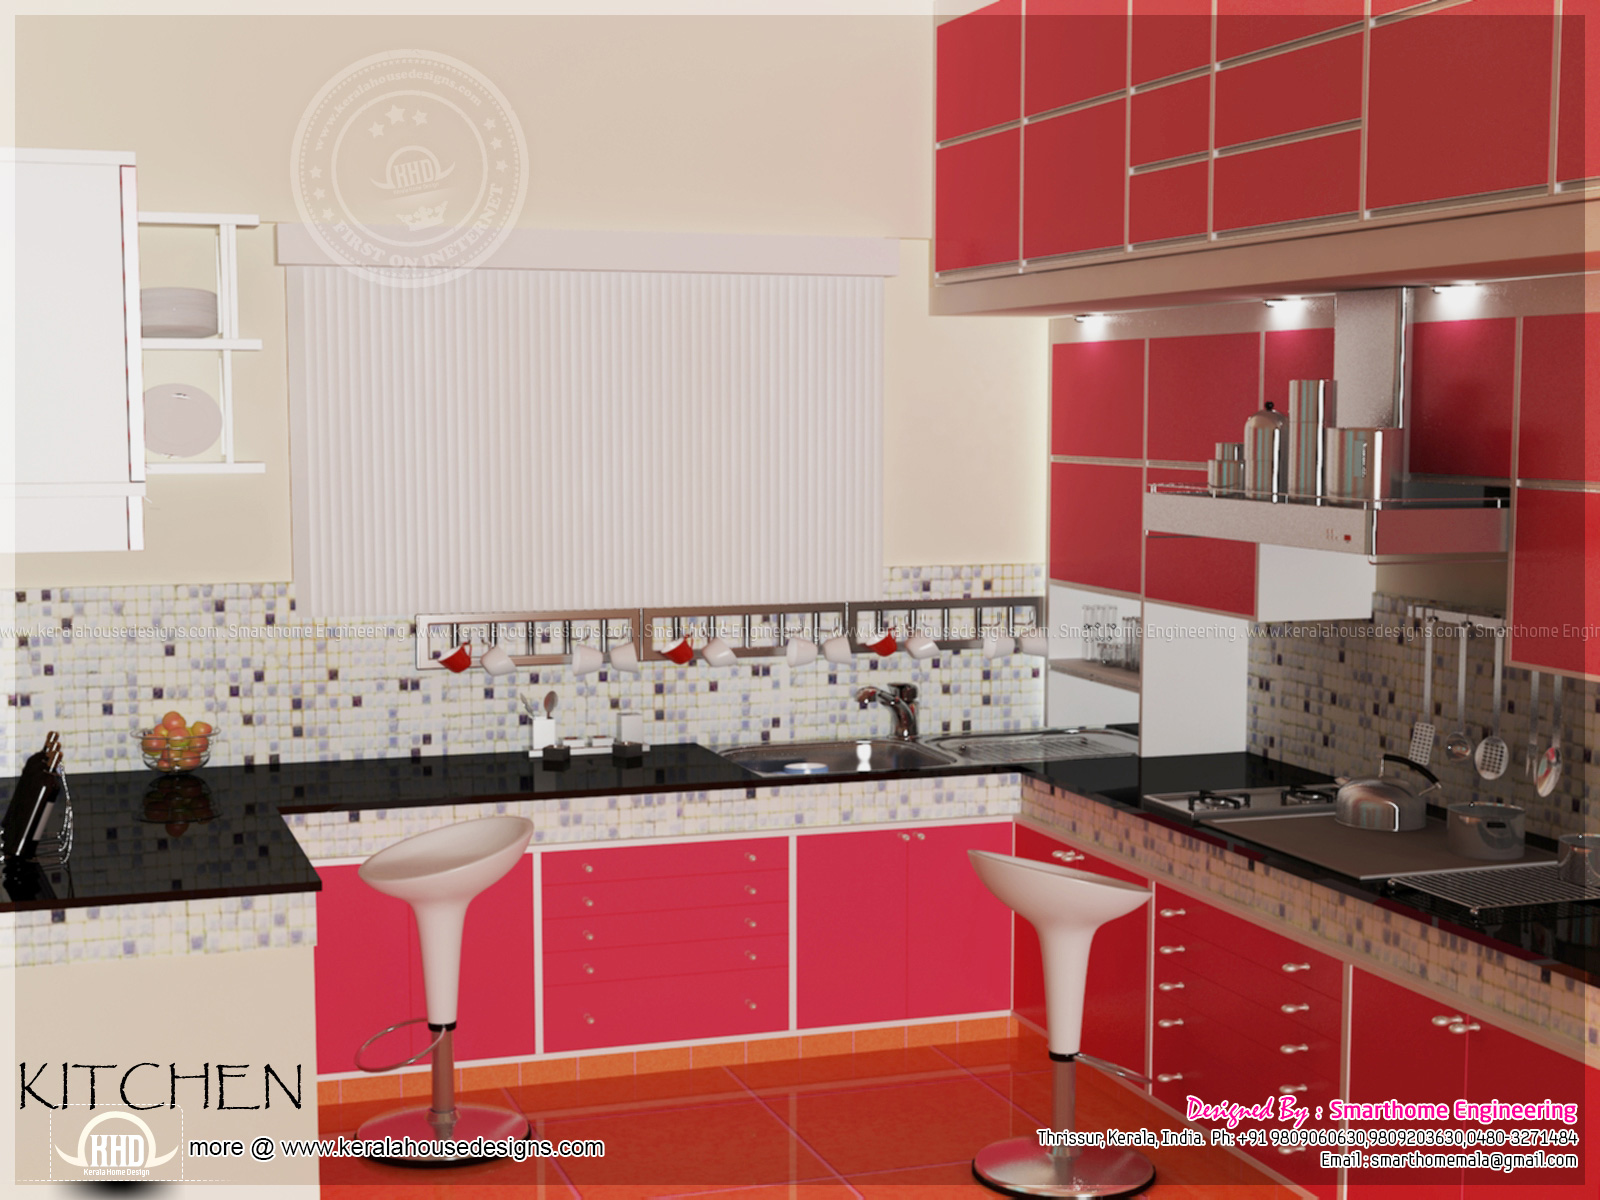 Indian Kitchen Interior Design Photos Middle Class Home Interior Design By Smarthome Engineering Thrissur